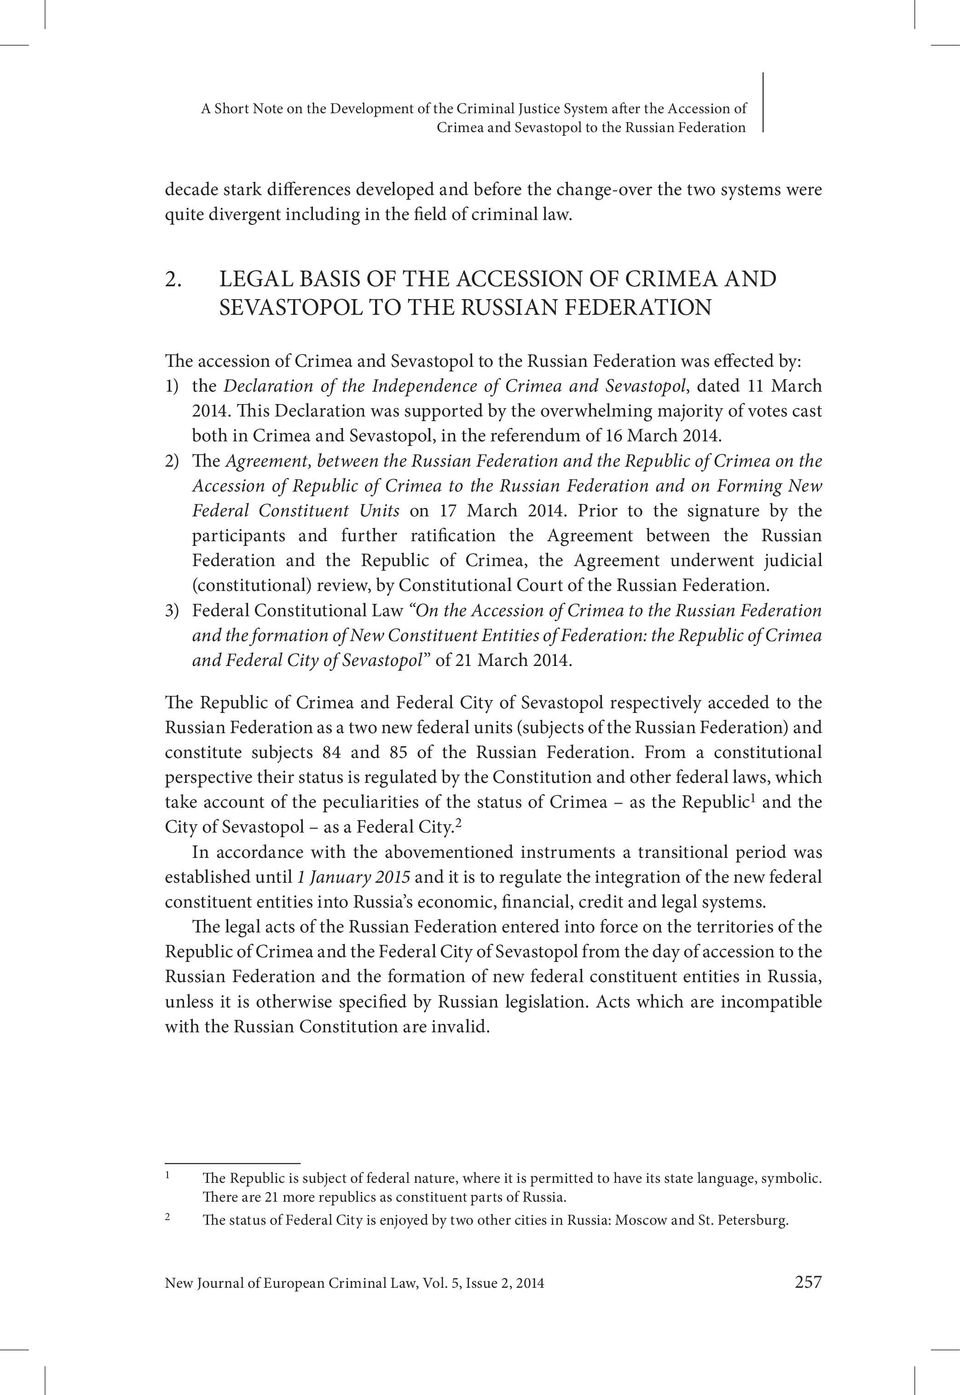 LEGAL BASIS OF THE ACCESSION OF CRIMEA AND SEVASTOPOL TO THE RUSSIAN FEDERATION The accession of Crimea and Sevastopol to the Russian Federation was effected by: 1) the Declaration of the